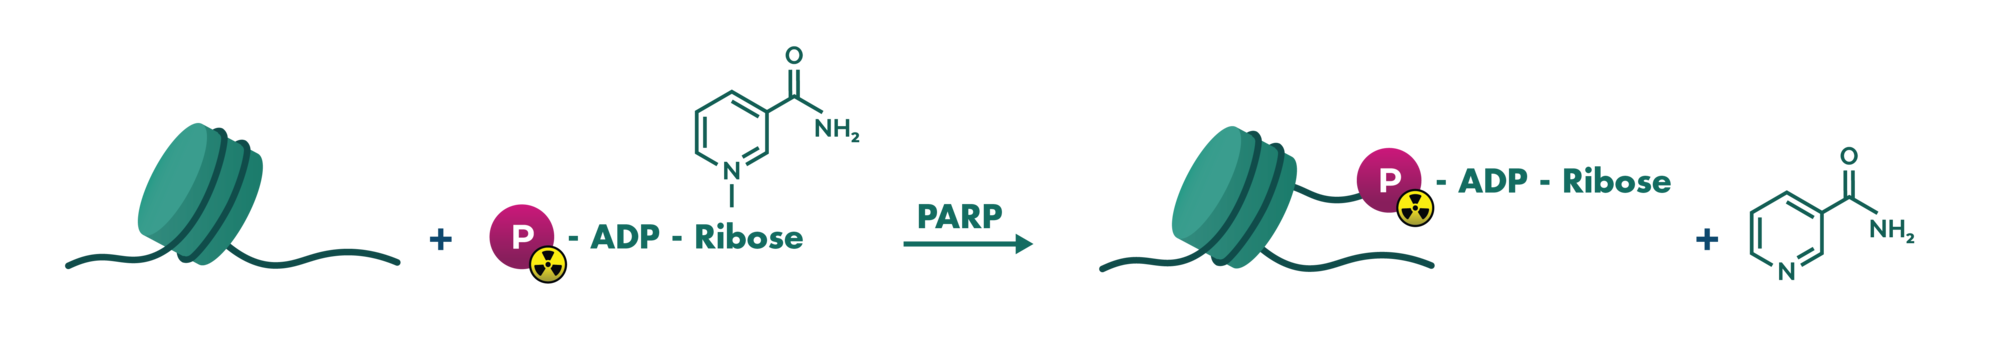 Assay principle of PARP compound screening based on transfer of 32P-labelled ADP-ribose onto histones